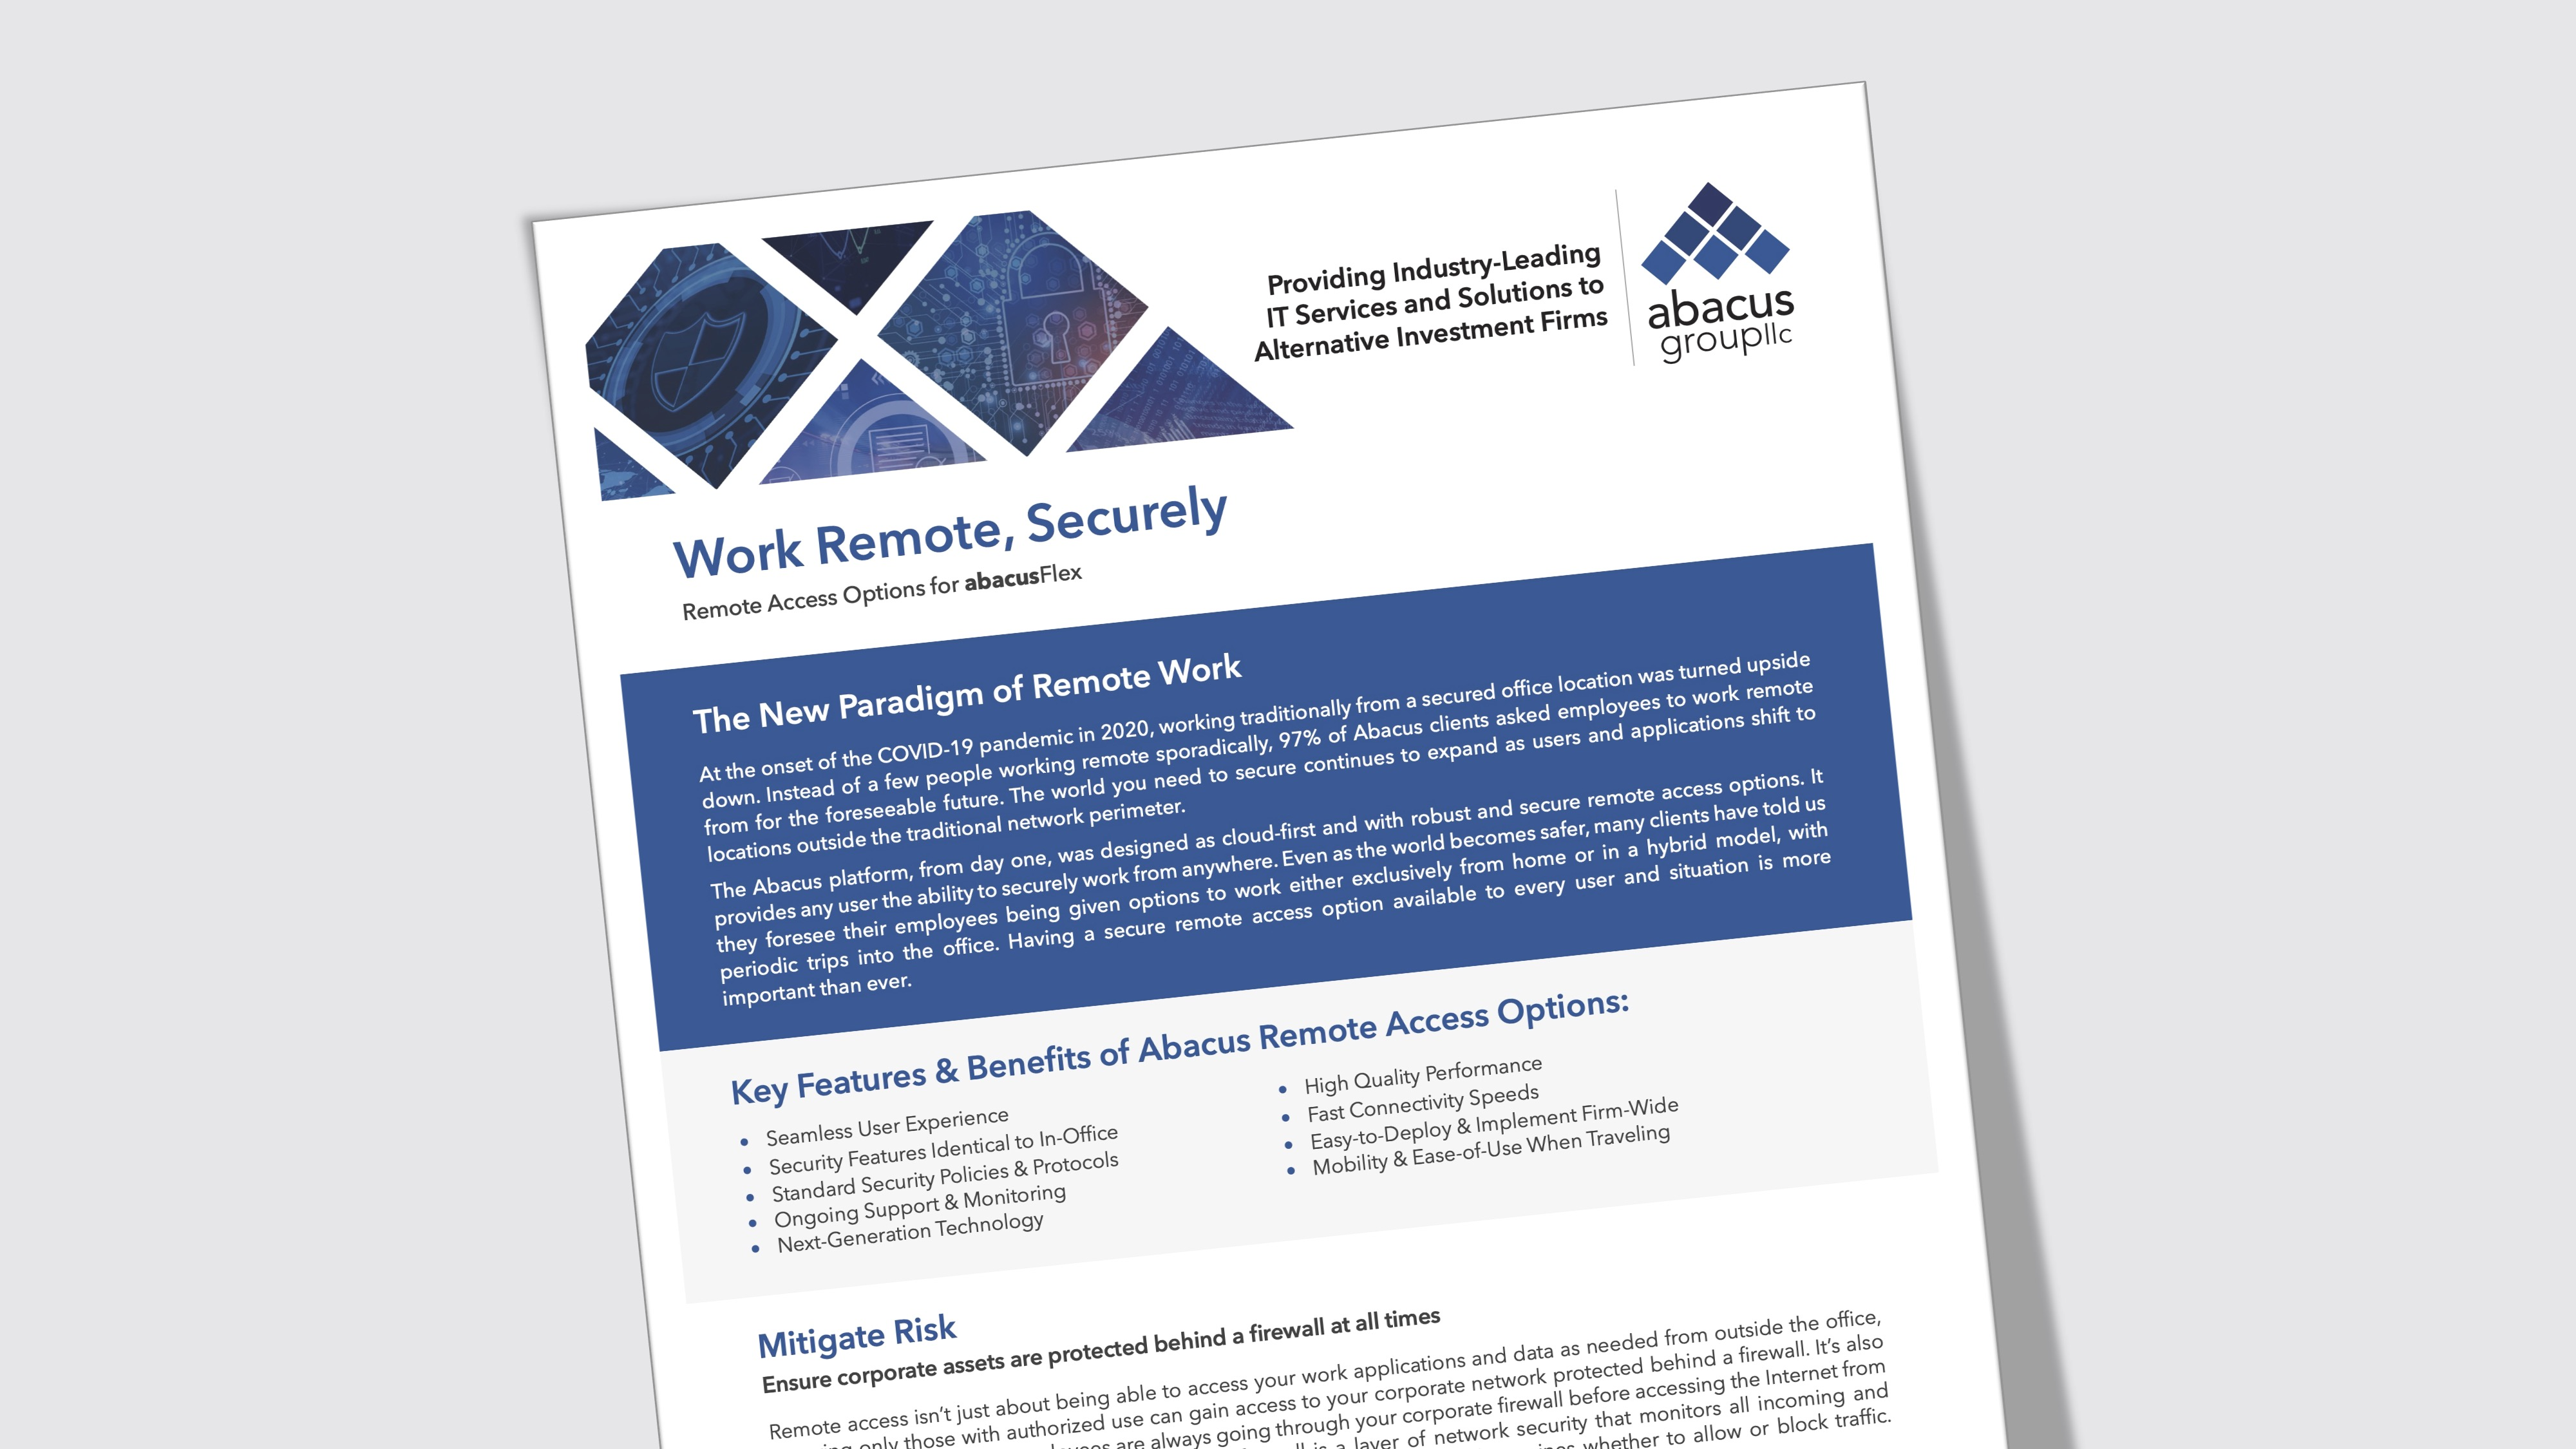 Remote Access Options